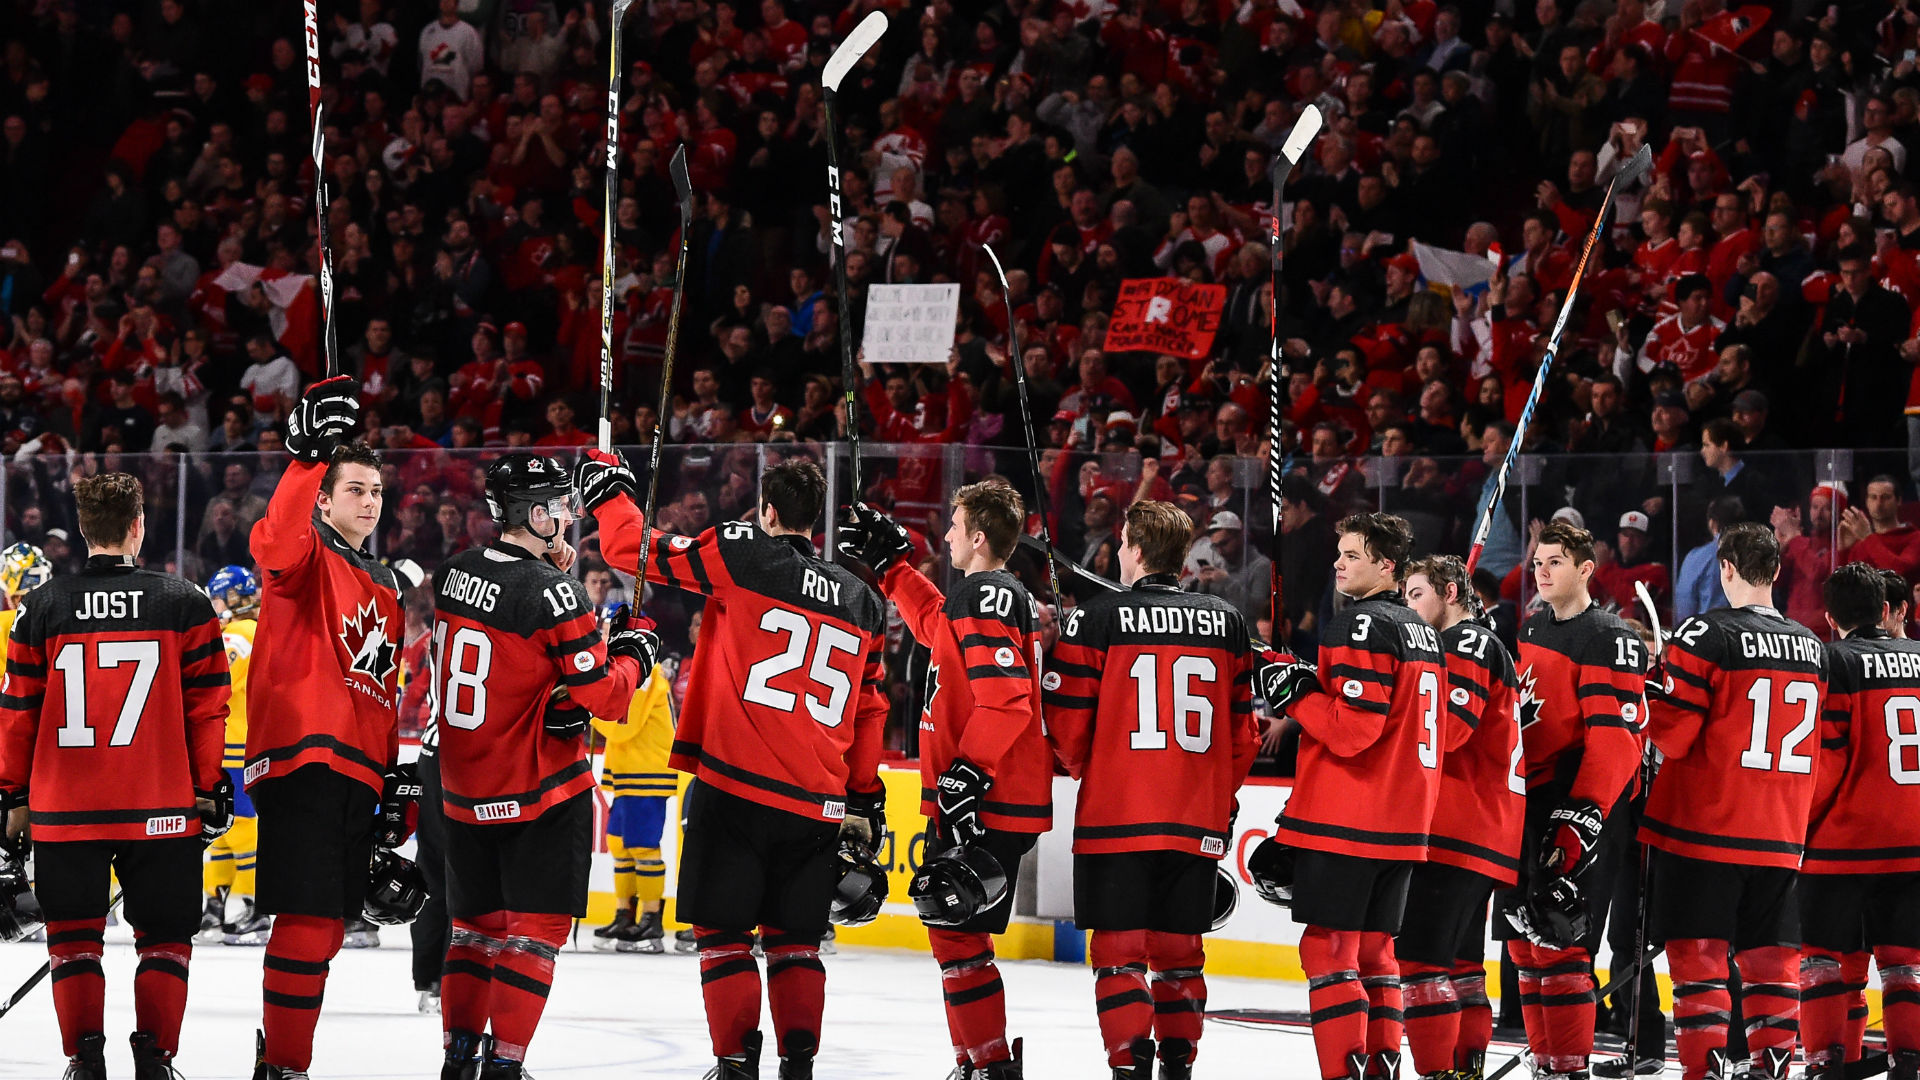 Hockey Canada names 32 players to world junior selection camp